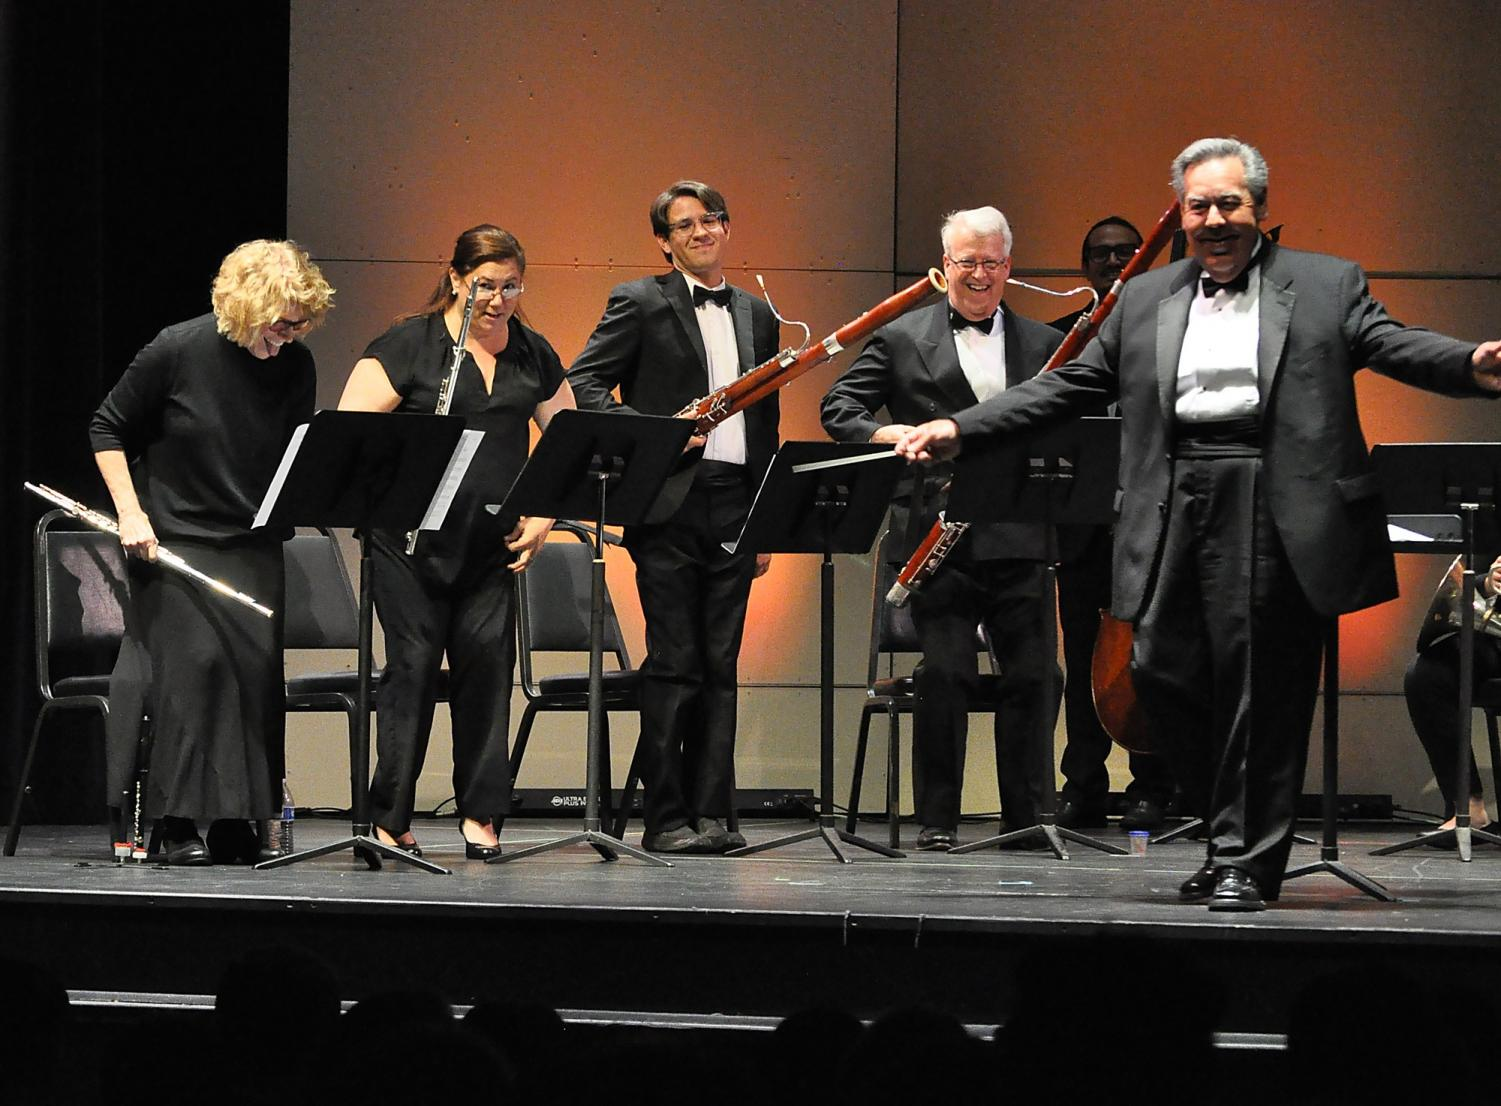 The conductor, Hector Salazar (right) and all the musicians getting an applause end of the performance at ECC Campus Theatre on Saturday, April 21. Photo credit: Miyung Kim